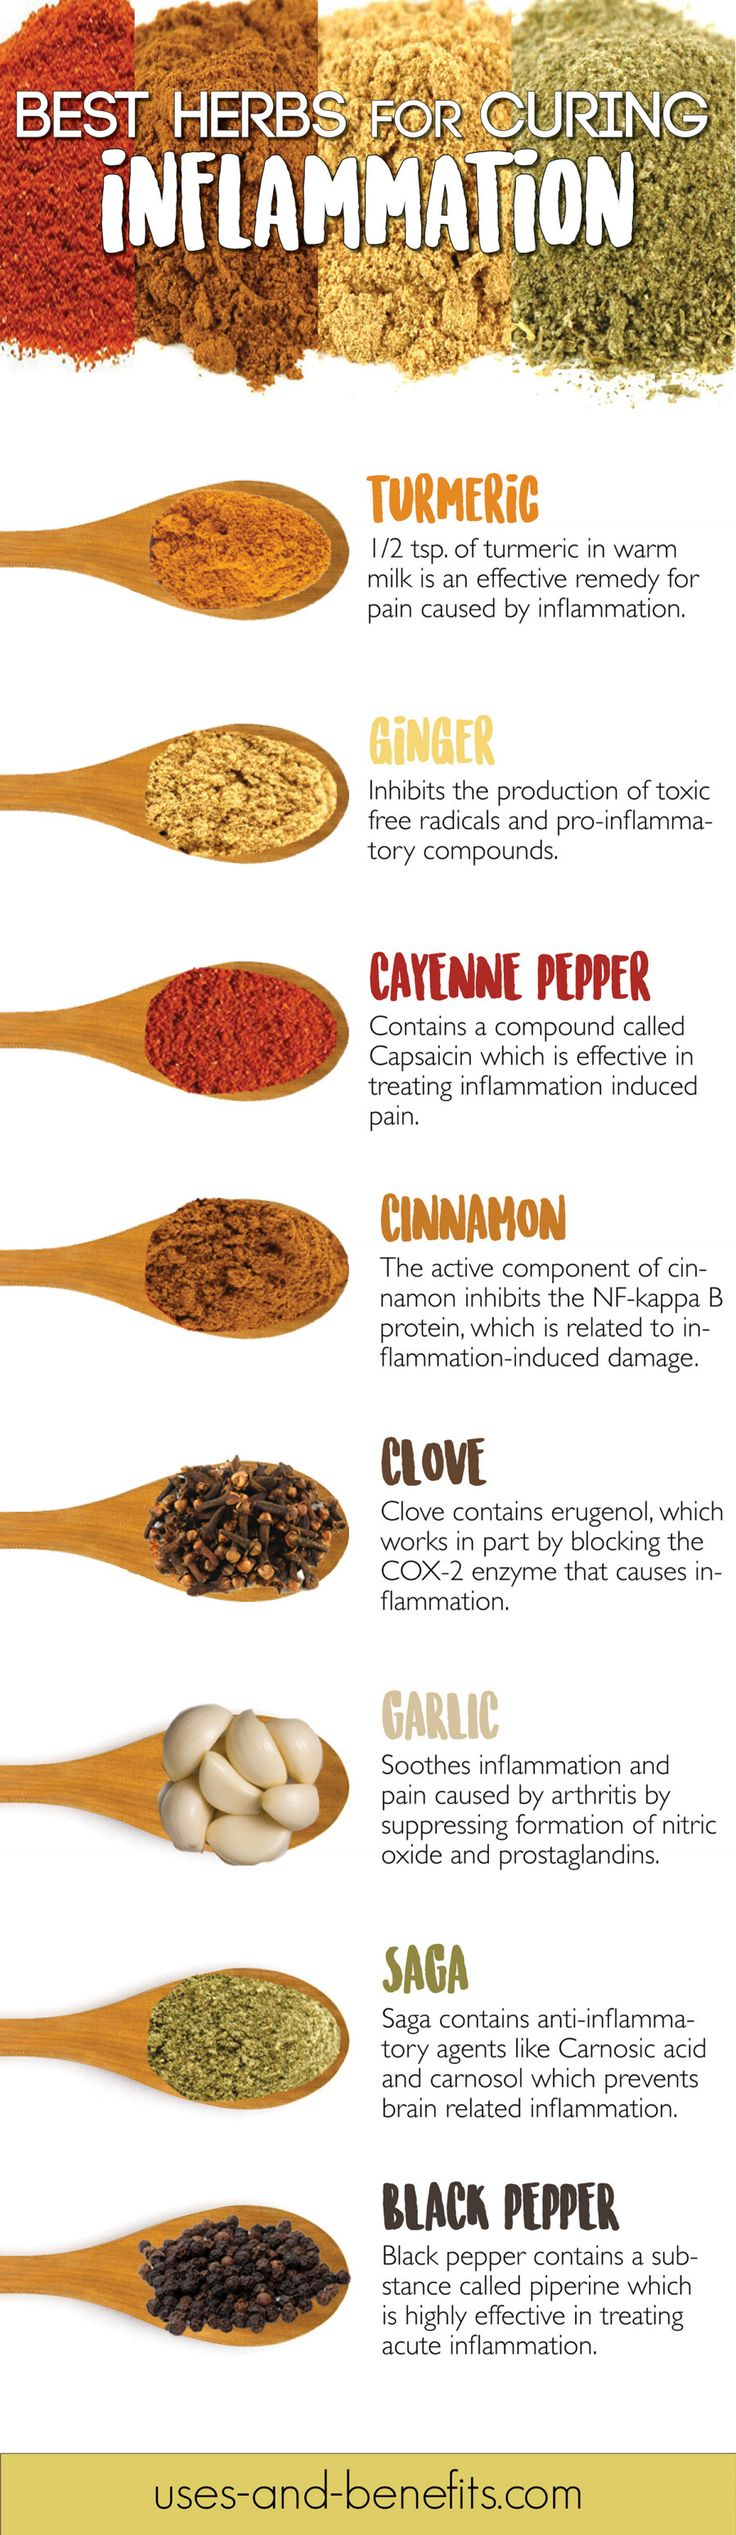 Infographic: The Best Herbs For Curing Inflammation Fast - DesignTAXI.com